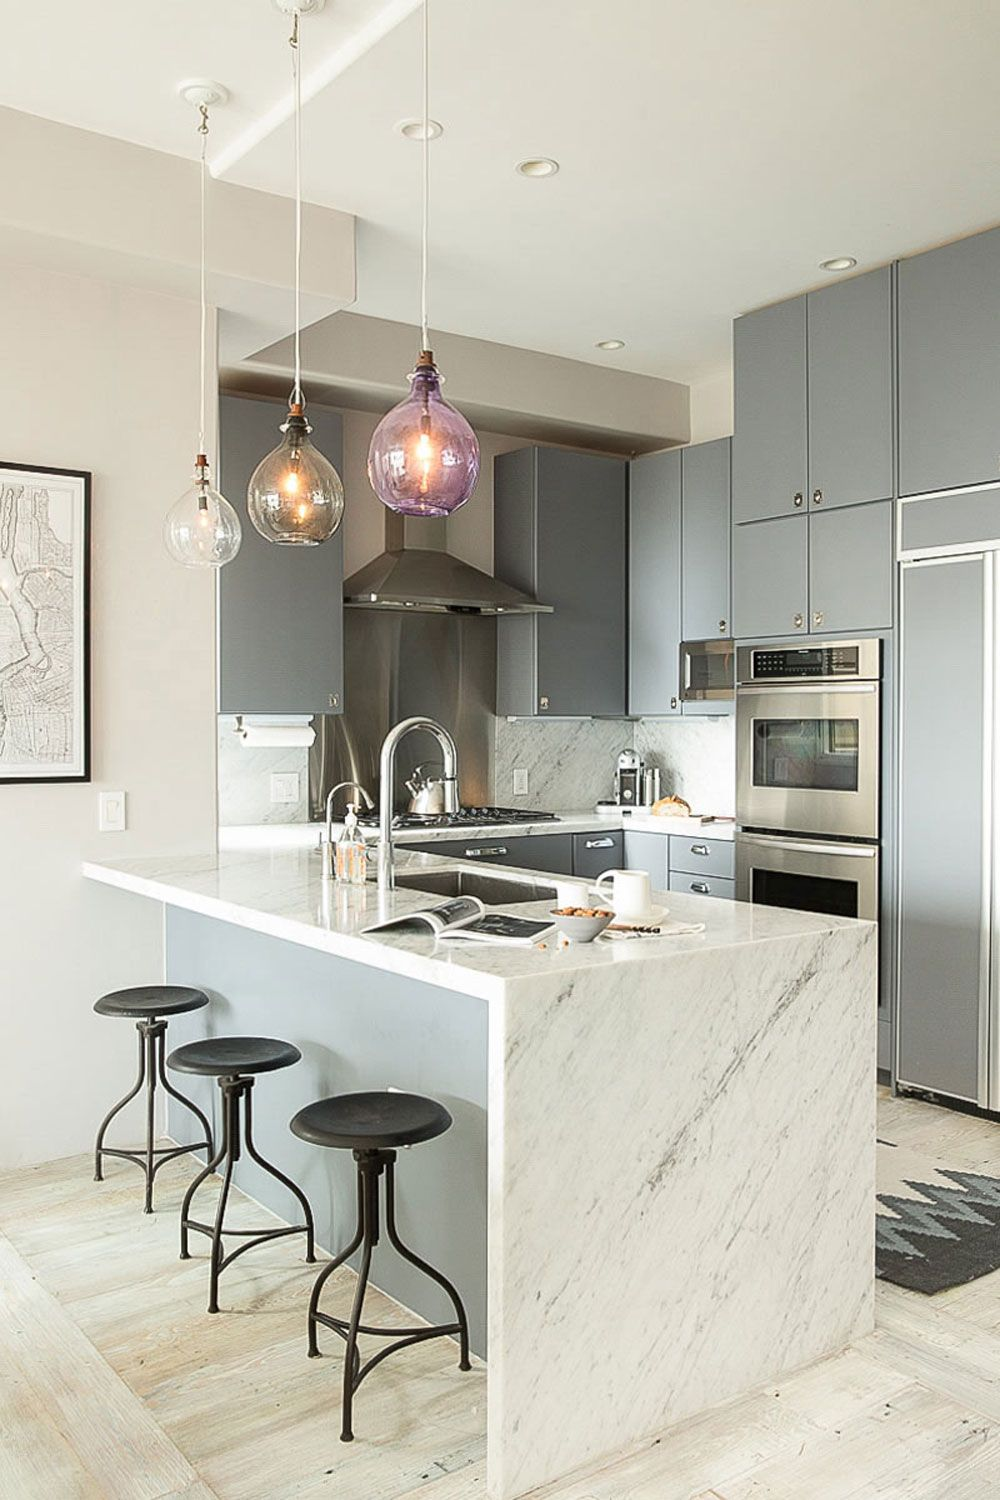 Kitchen Interior Design Concept Ideas To Give You A Starting Point Modern Kitchen Design Small Modern Kitchens Modern Kitchen